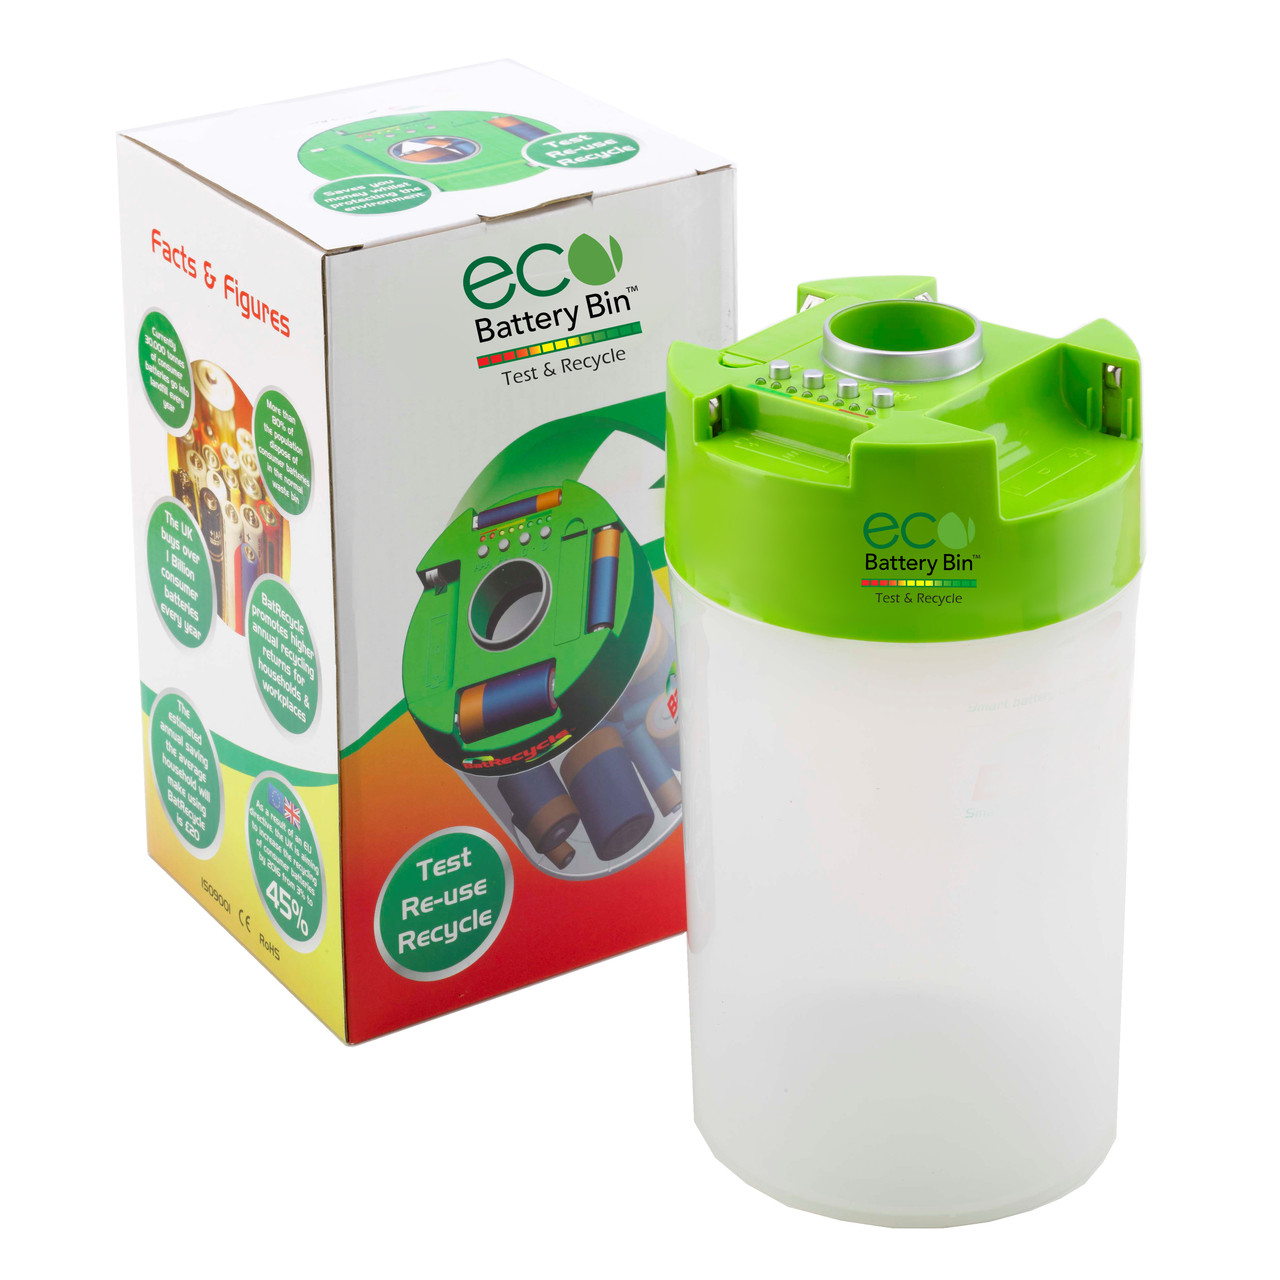 ECO Battery Bin front view